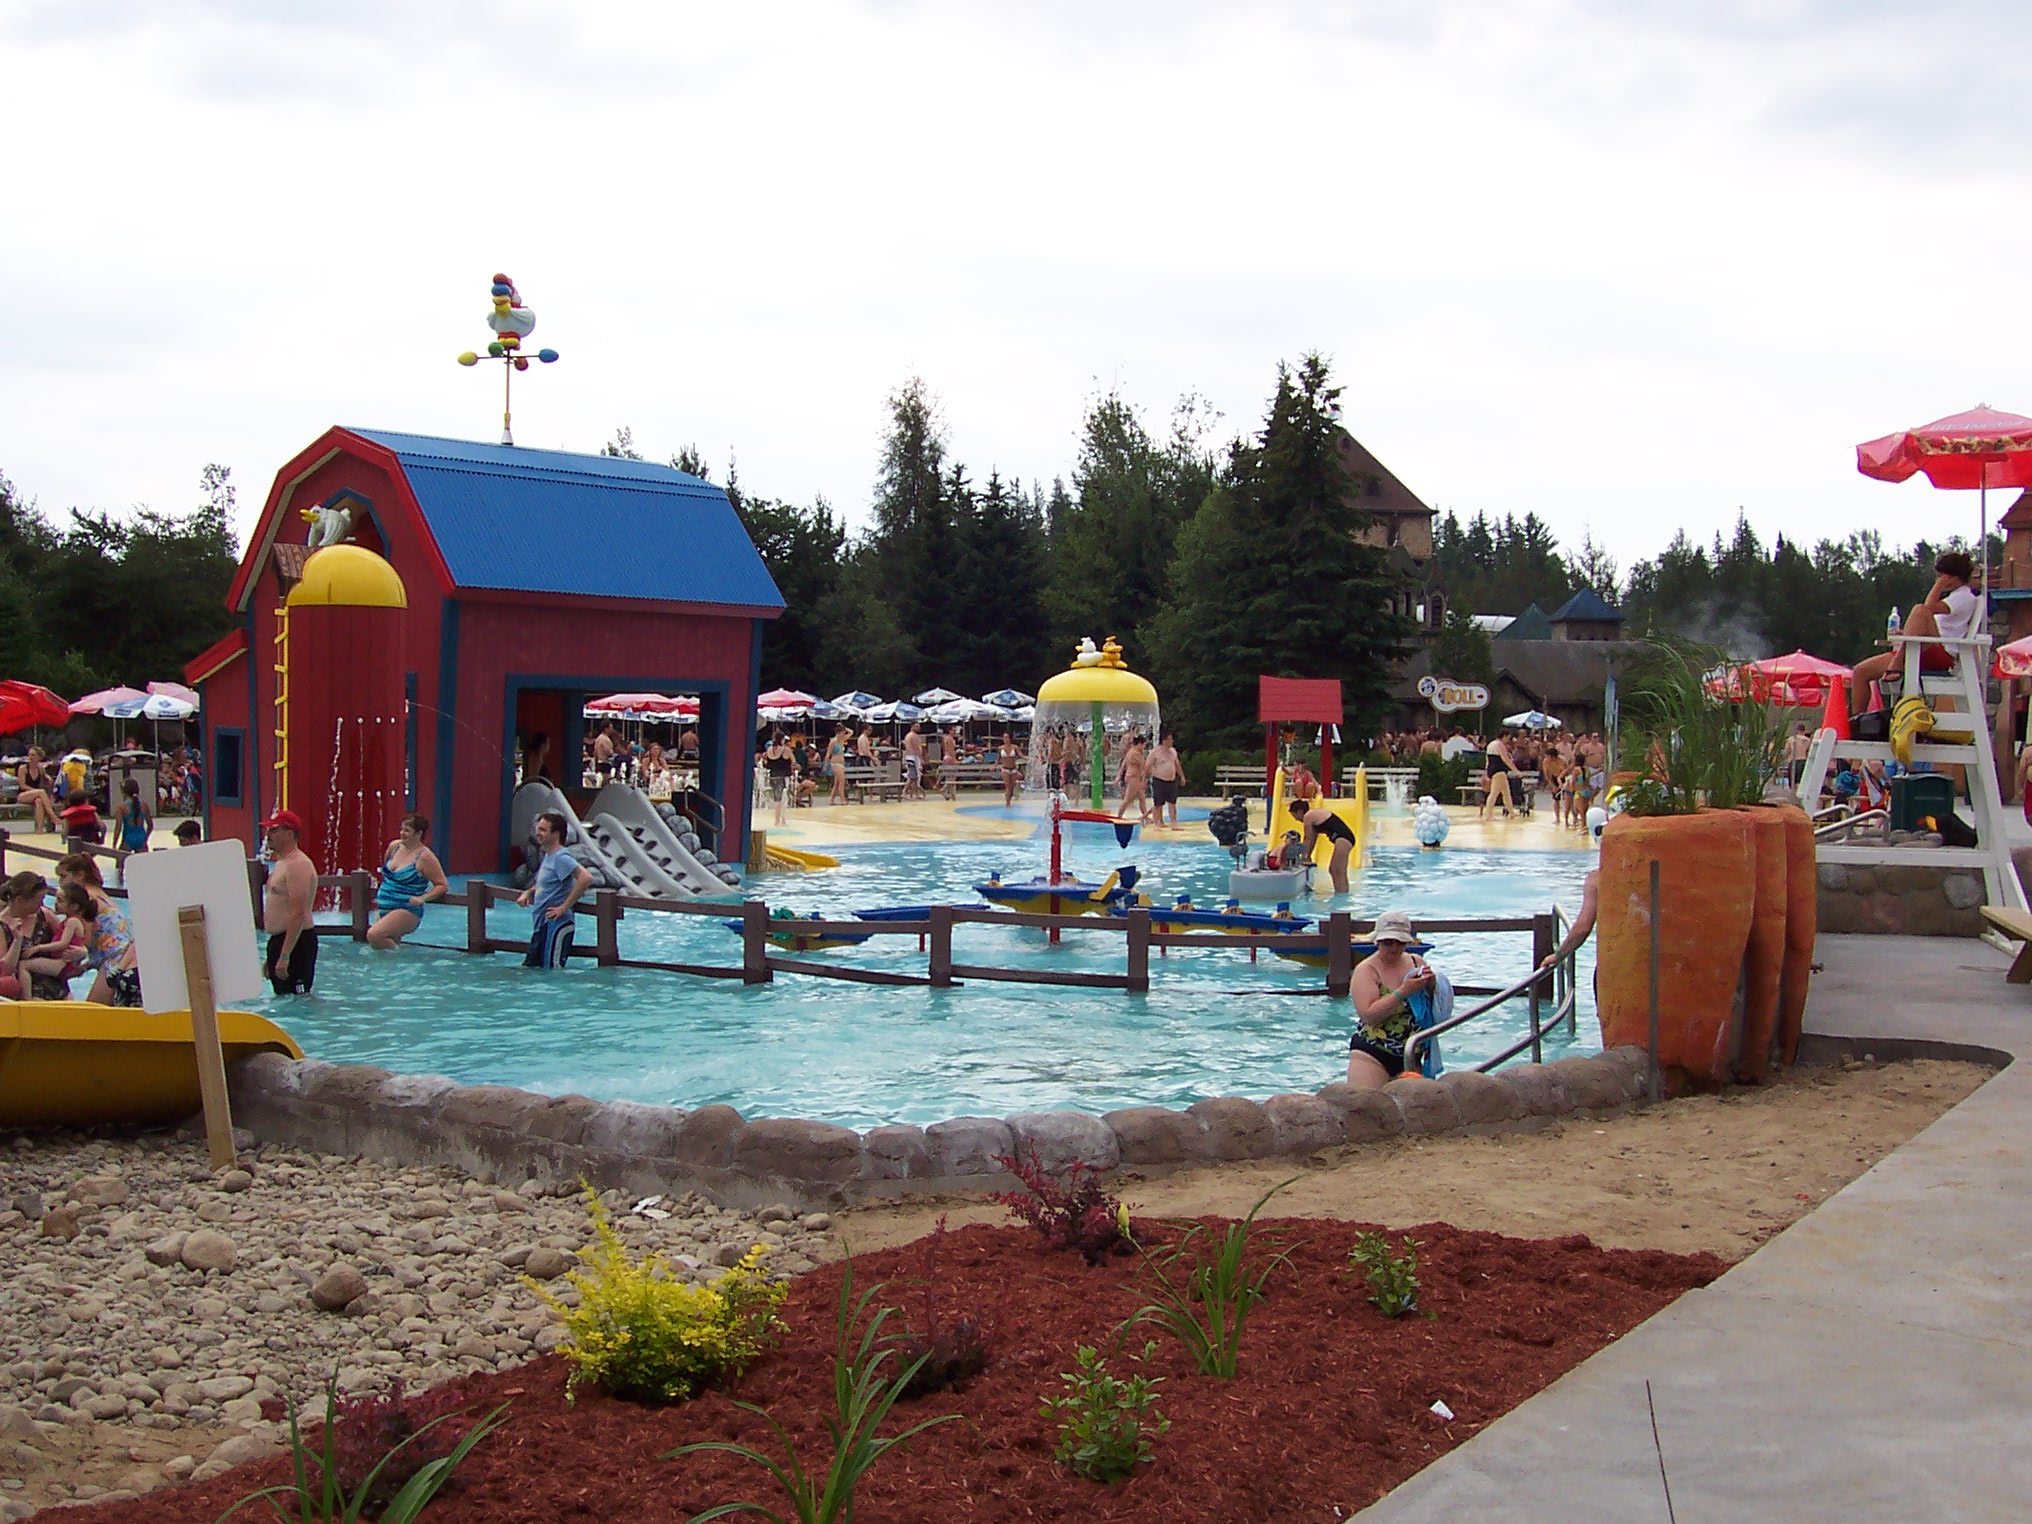 Valcartier un autre style de parc d 39 attraction for Village vacances gers avec piscine